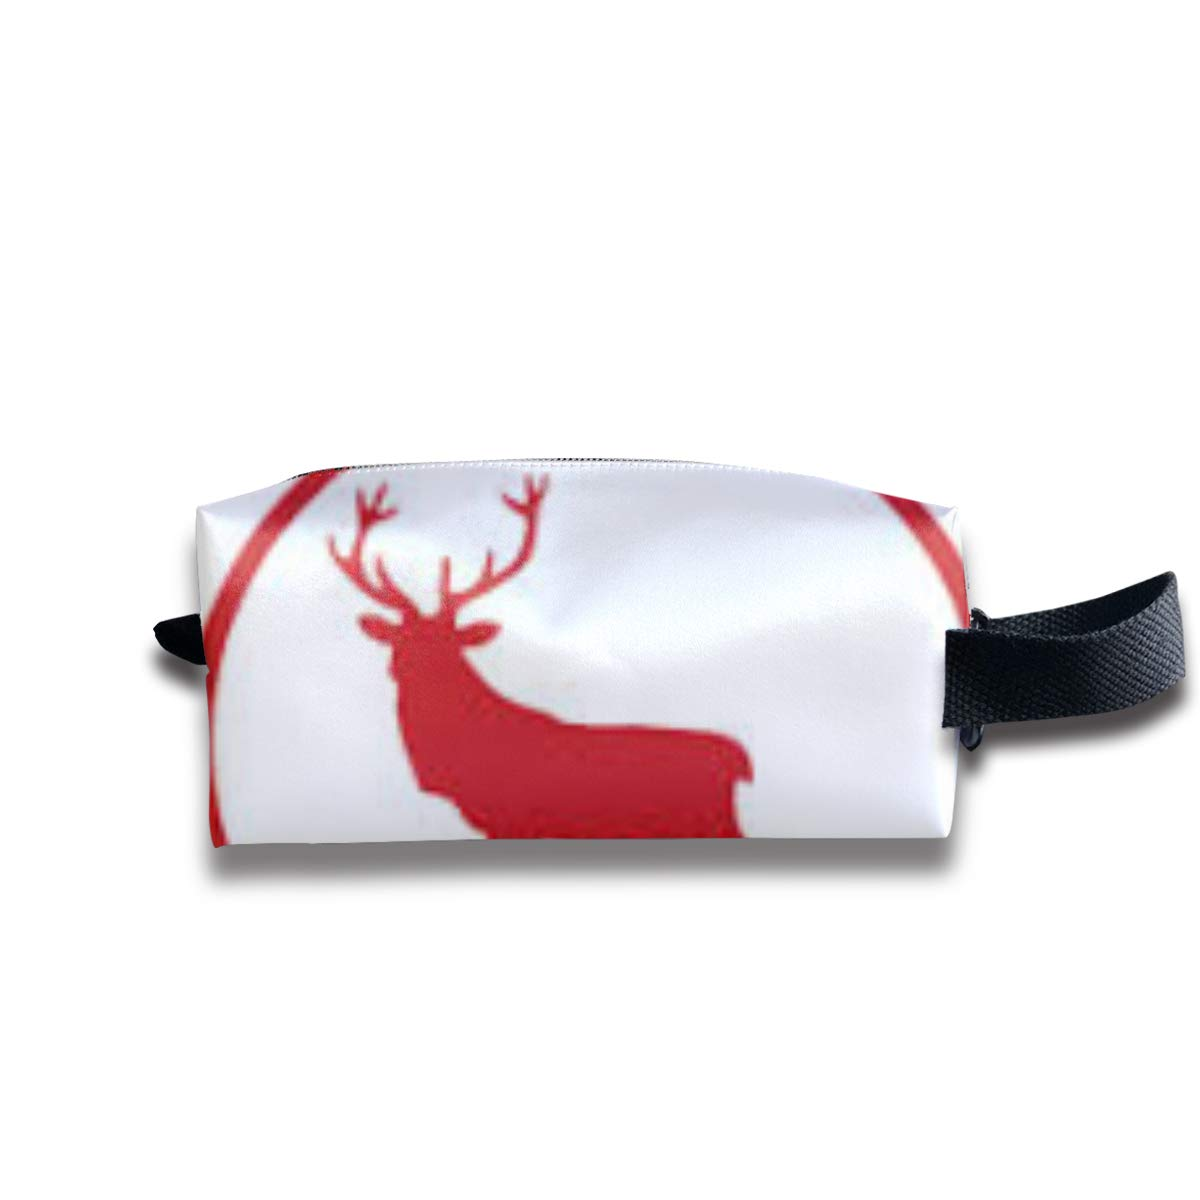 Novelty Colorful Lovely Fox Portable Evening Bags Clutch Pouch Purse Handbags Cell Phone Wrist Handbags For Womens